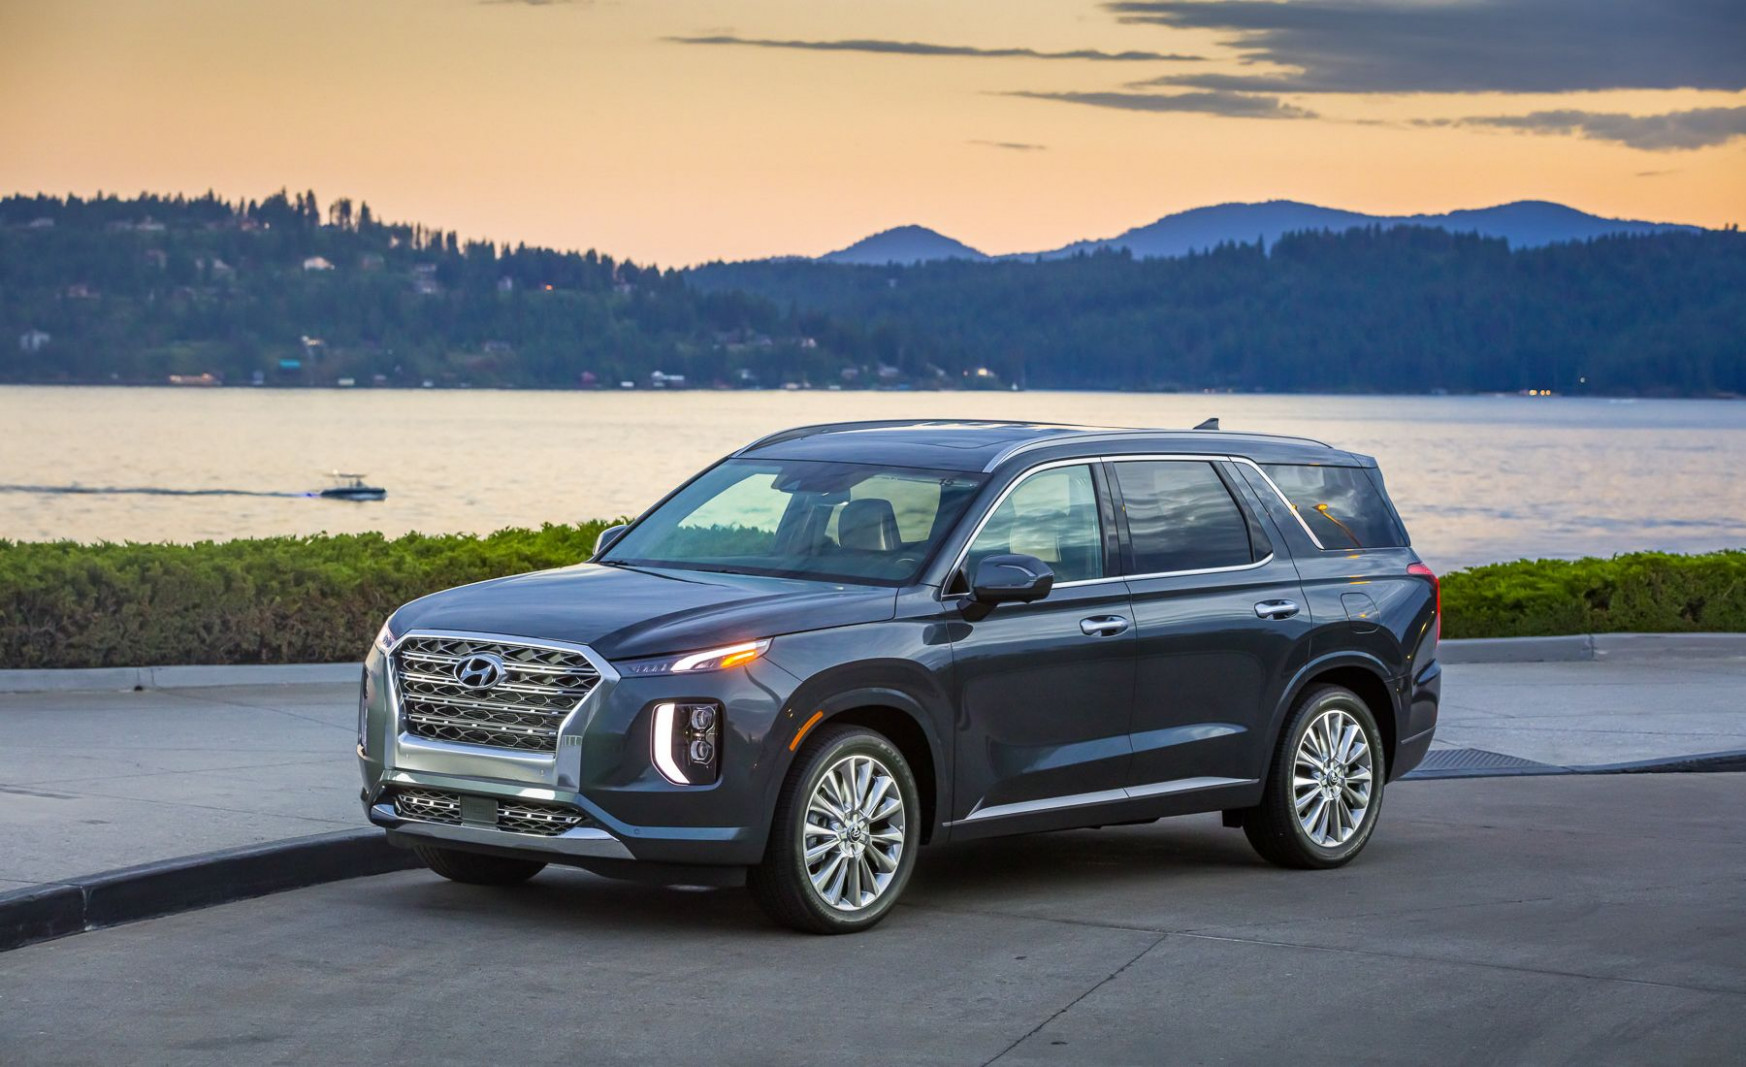 7 Hyundai Palisade Review, Pricing, and Specs - 2020 hyundai palisade dimensions